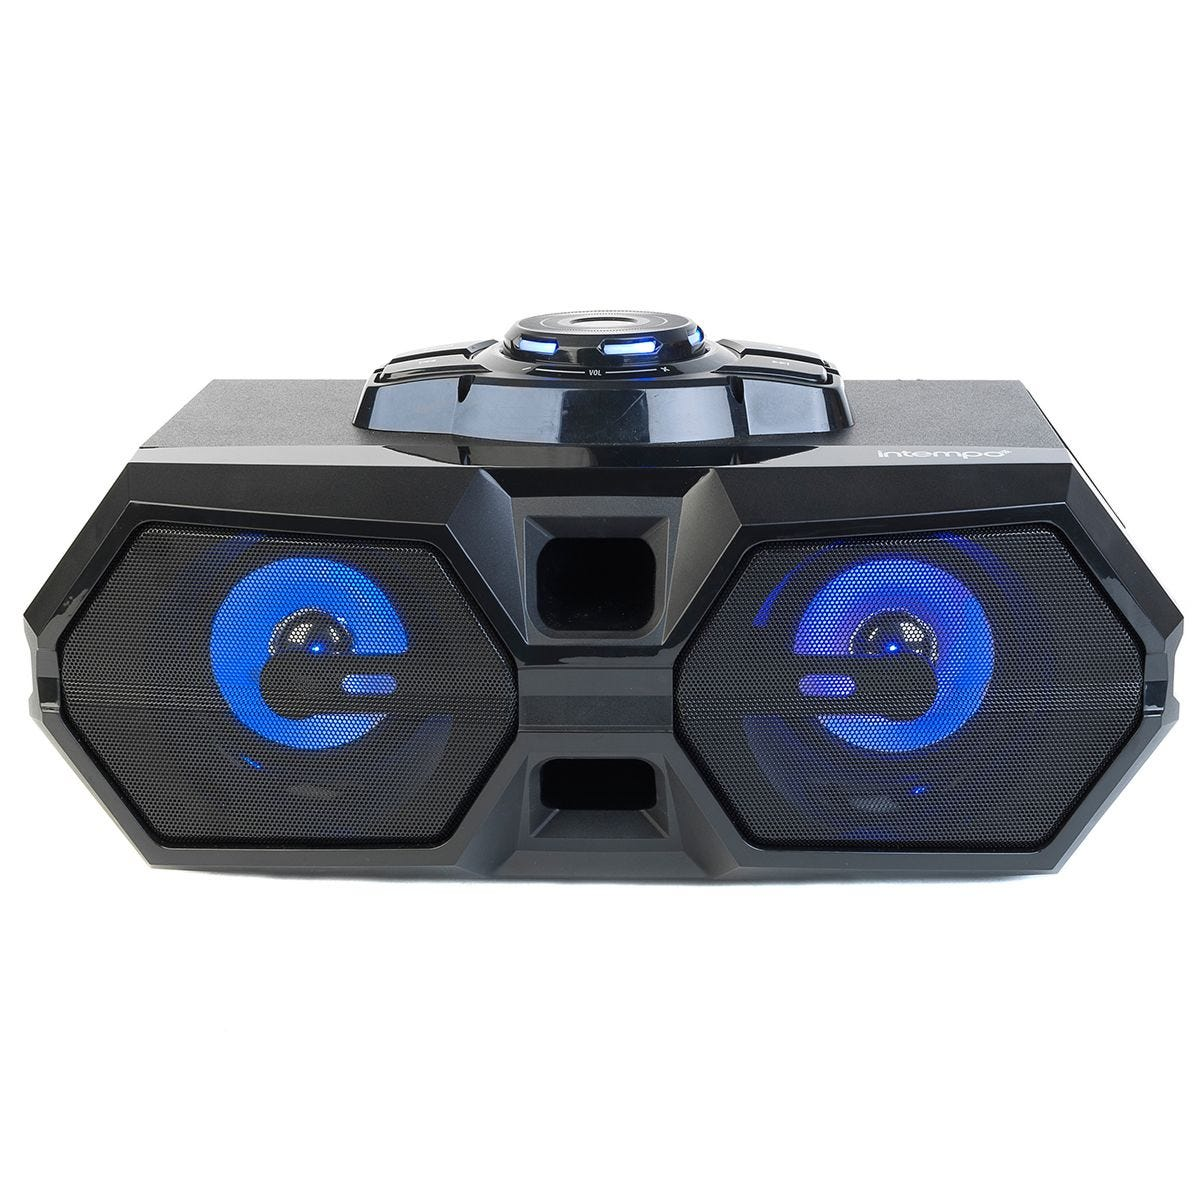 Intempo Rechargeable Bluetooth LED Party Speaker for iPhone, Android and Other Smart USB Devices - Black